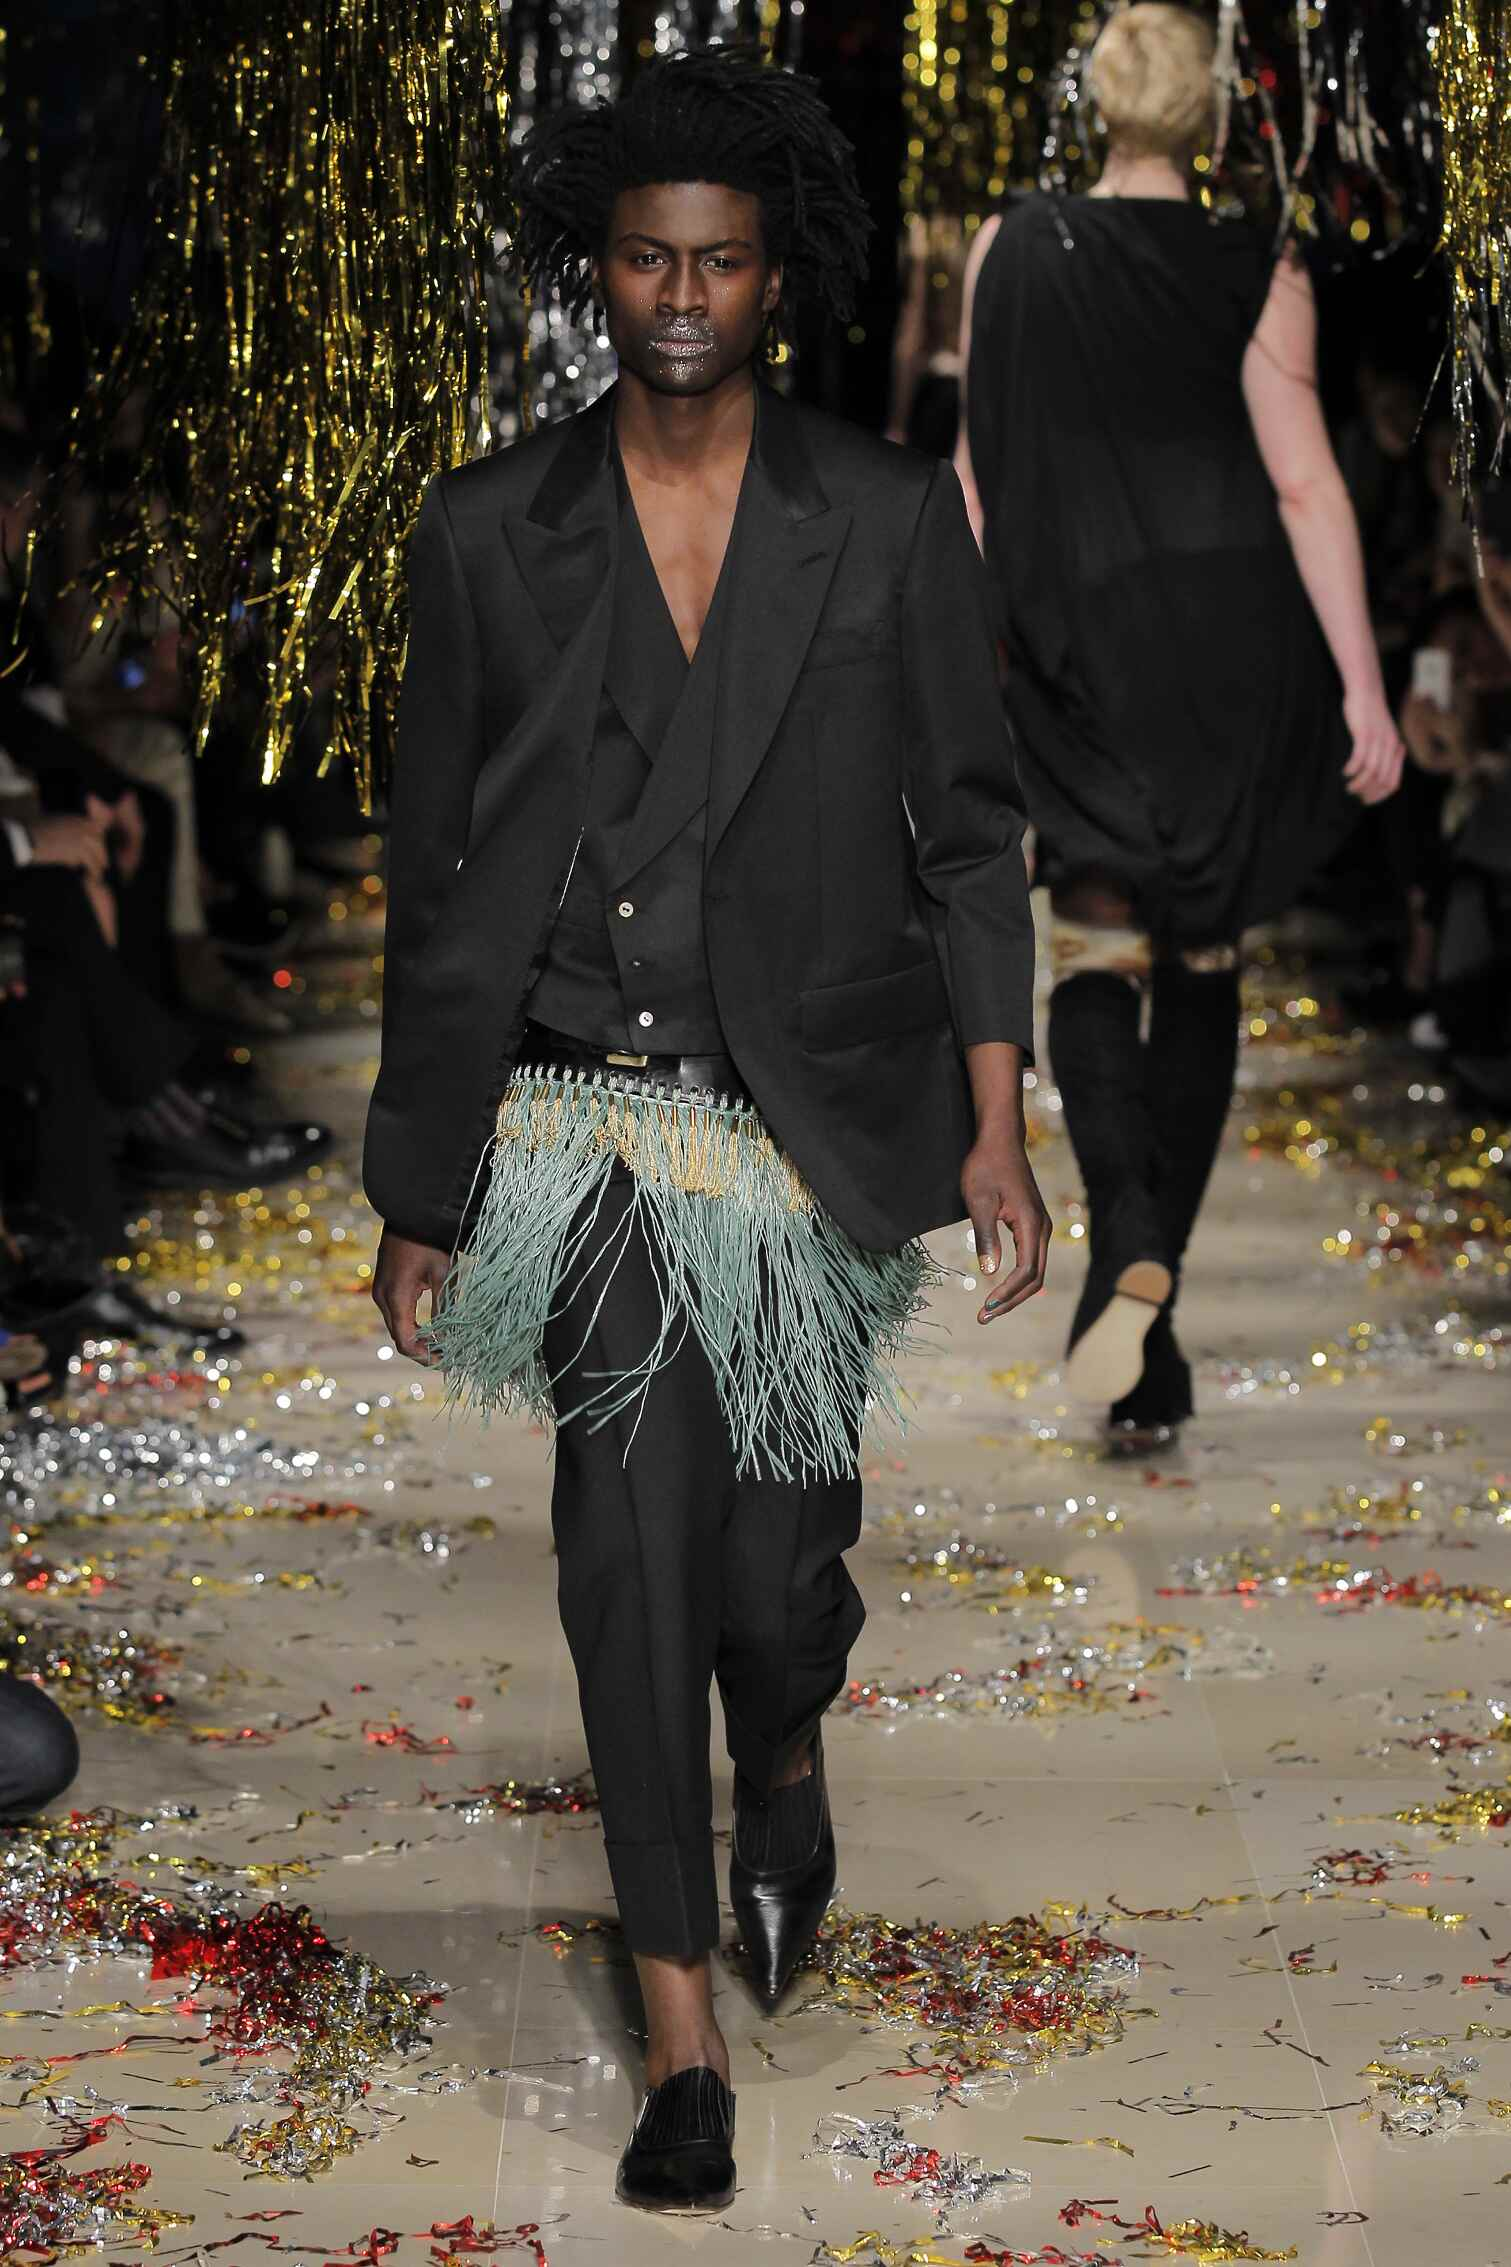 Catwalk Vivienne Westwood Gold Label Collection Fashion Show Winter 2015